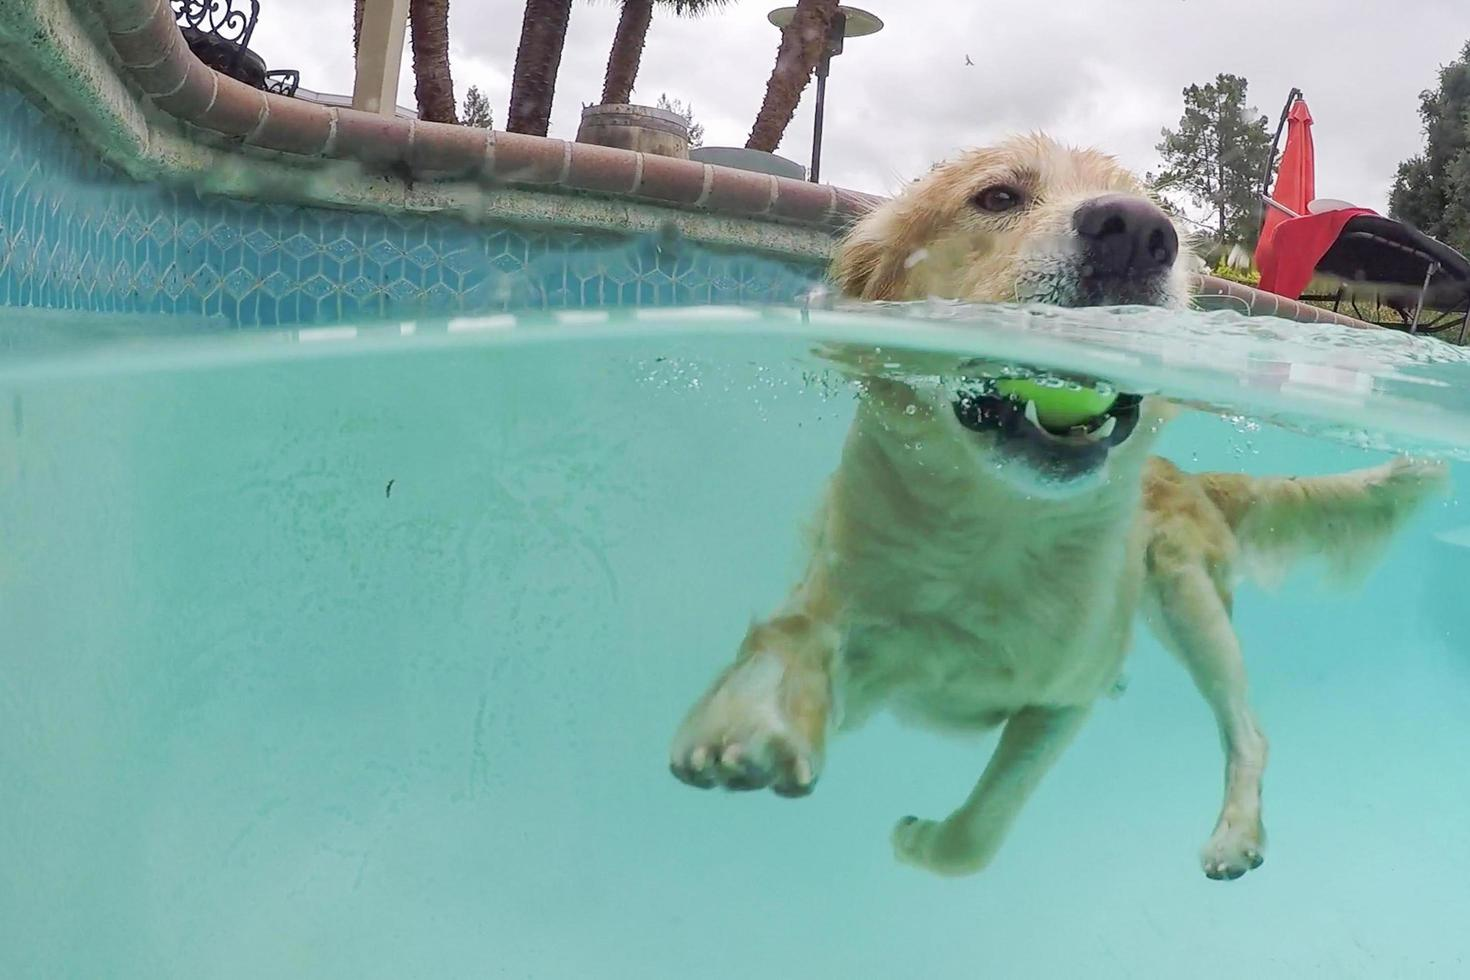 A Golden Retriever swimming in a pool photo